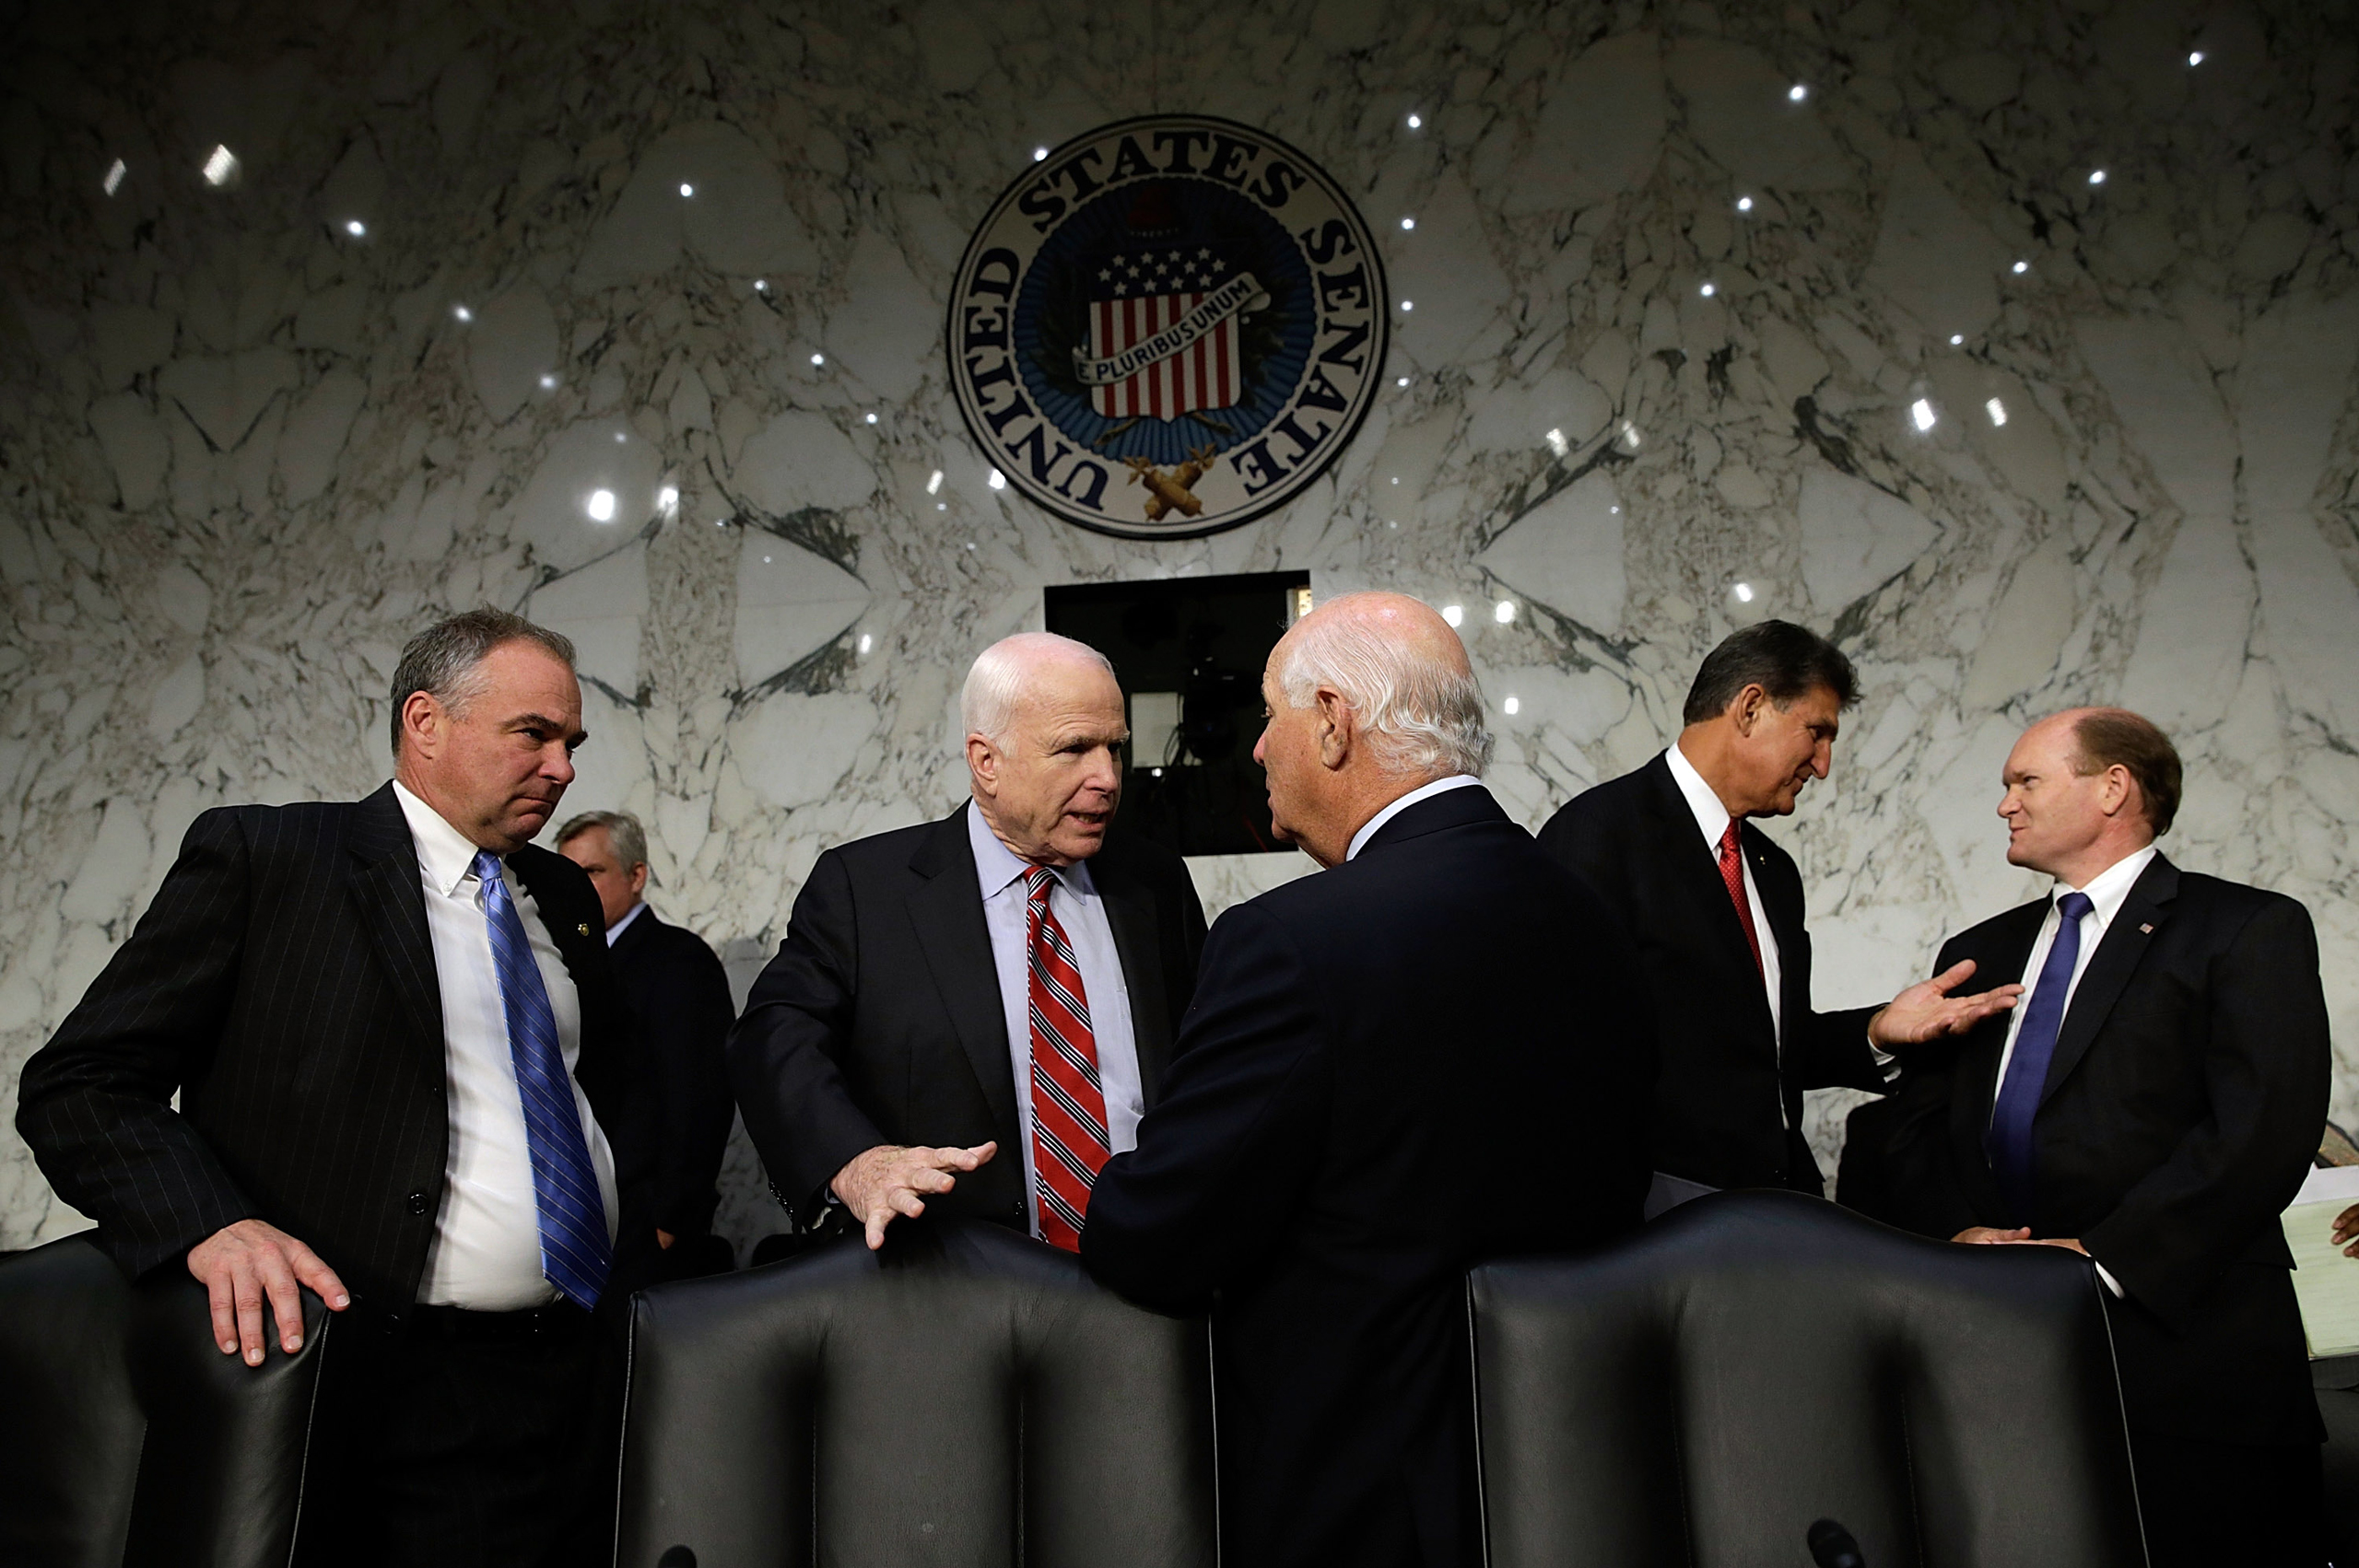 U.S. Sen. Tim Kaine, Sen. John McCain, Sen. Ben Cardin, Sen. Joe Manchin and Sen. Chris Coons confer before the testimony of U.S. Secretary of State John Kerry, U.S. Defense Secretary Chuck Hagel, and U.S. Chairman of the Joint Chiefs of Staff Gen. Martin Dempsey as they appear before the Senate Foreign Relations Committee on the topic of  The Authorization of Use of Force in Syria  in Washington on  Sept. 3, 2013.